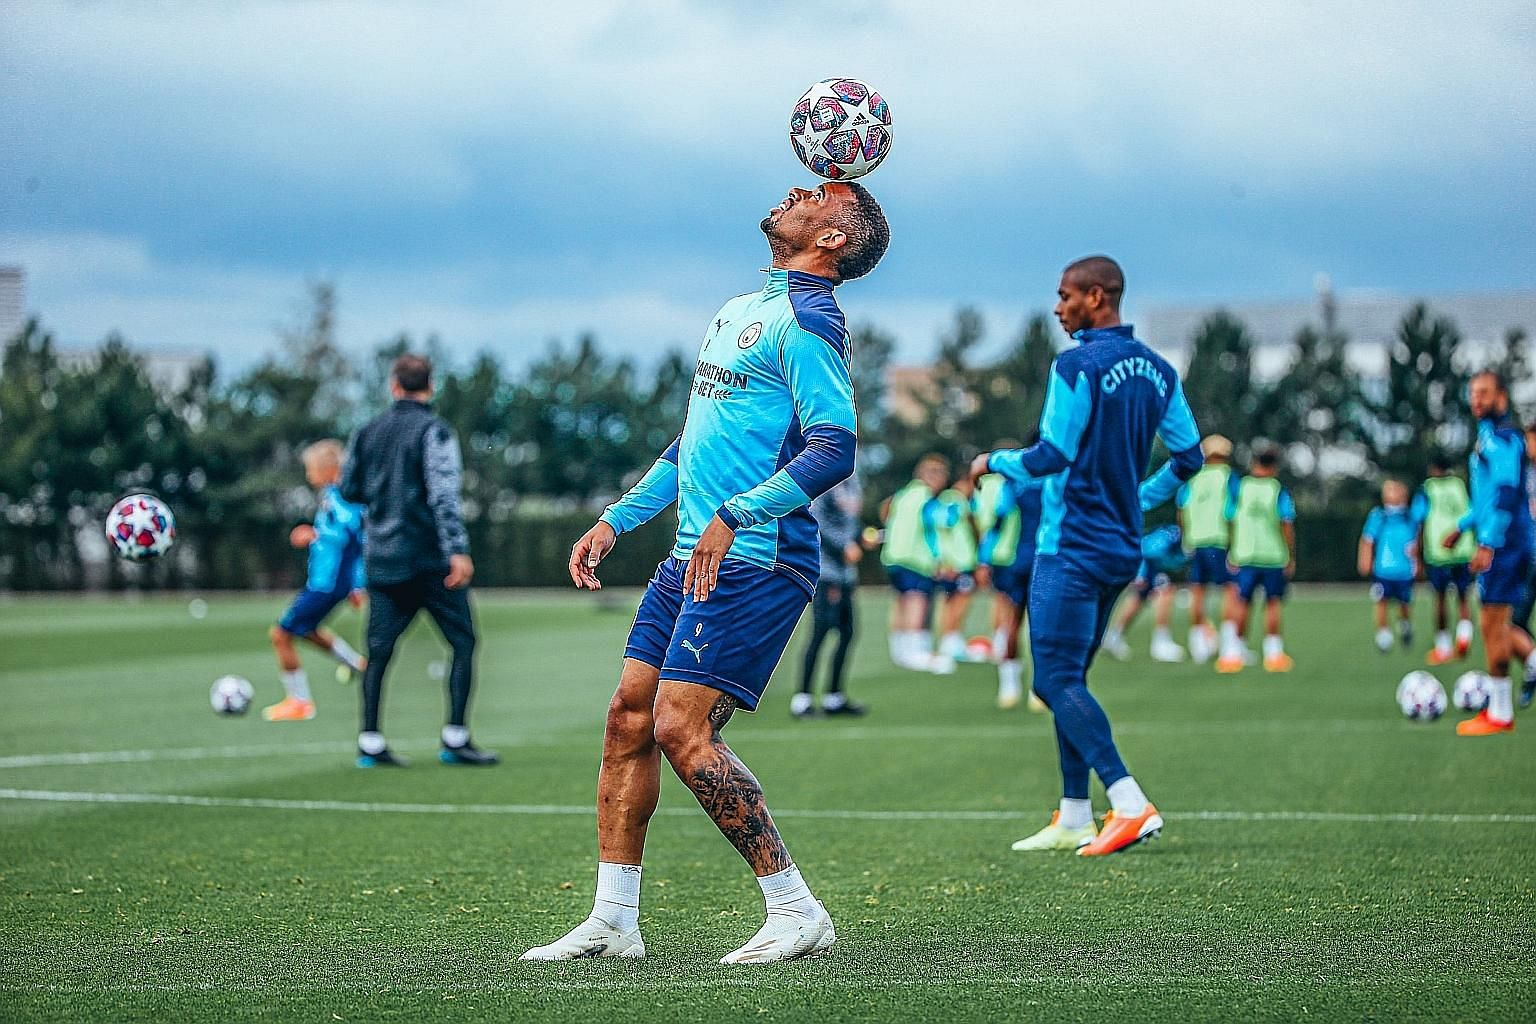 Manchester City forward Gabriel Jesus will be taking the place of the injured Sergio Aguero for their last-16, second-leg Champions League clash against Real Madrid.